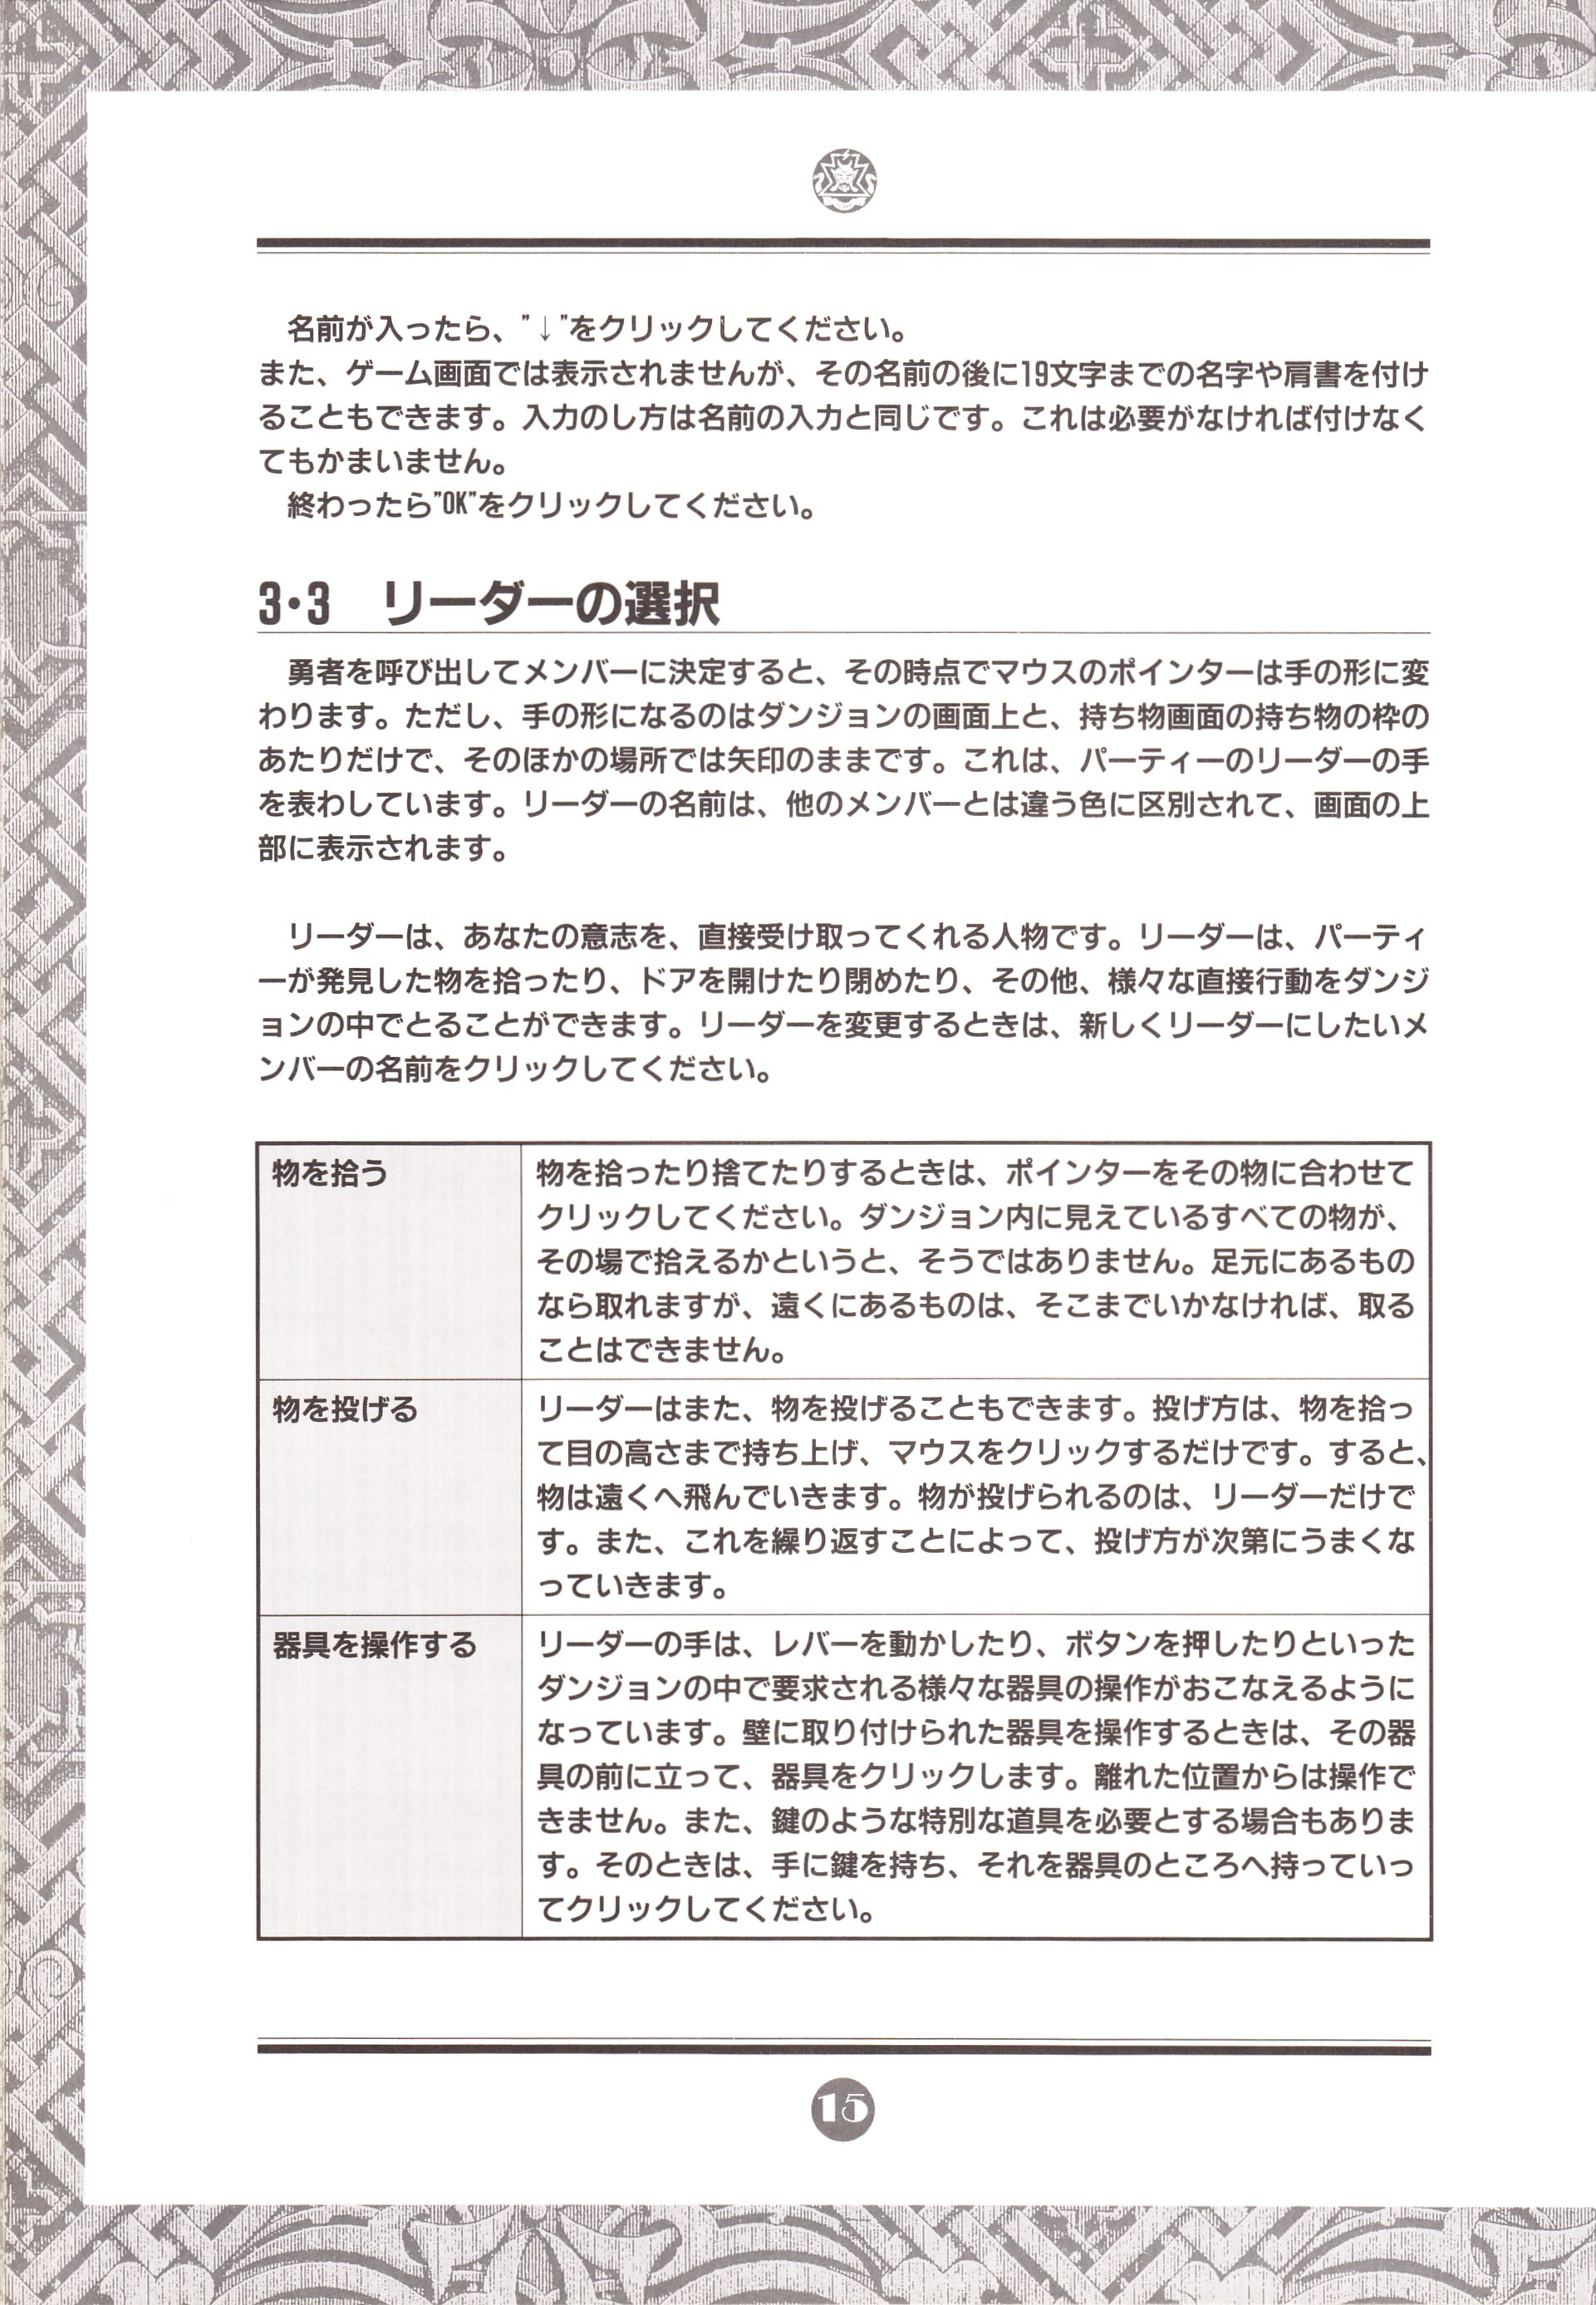 Game - Chaos Strikes Back - JP - PC-9801 - 3-5-inch - An Operation Manual - Page 018 - Scan